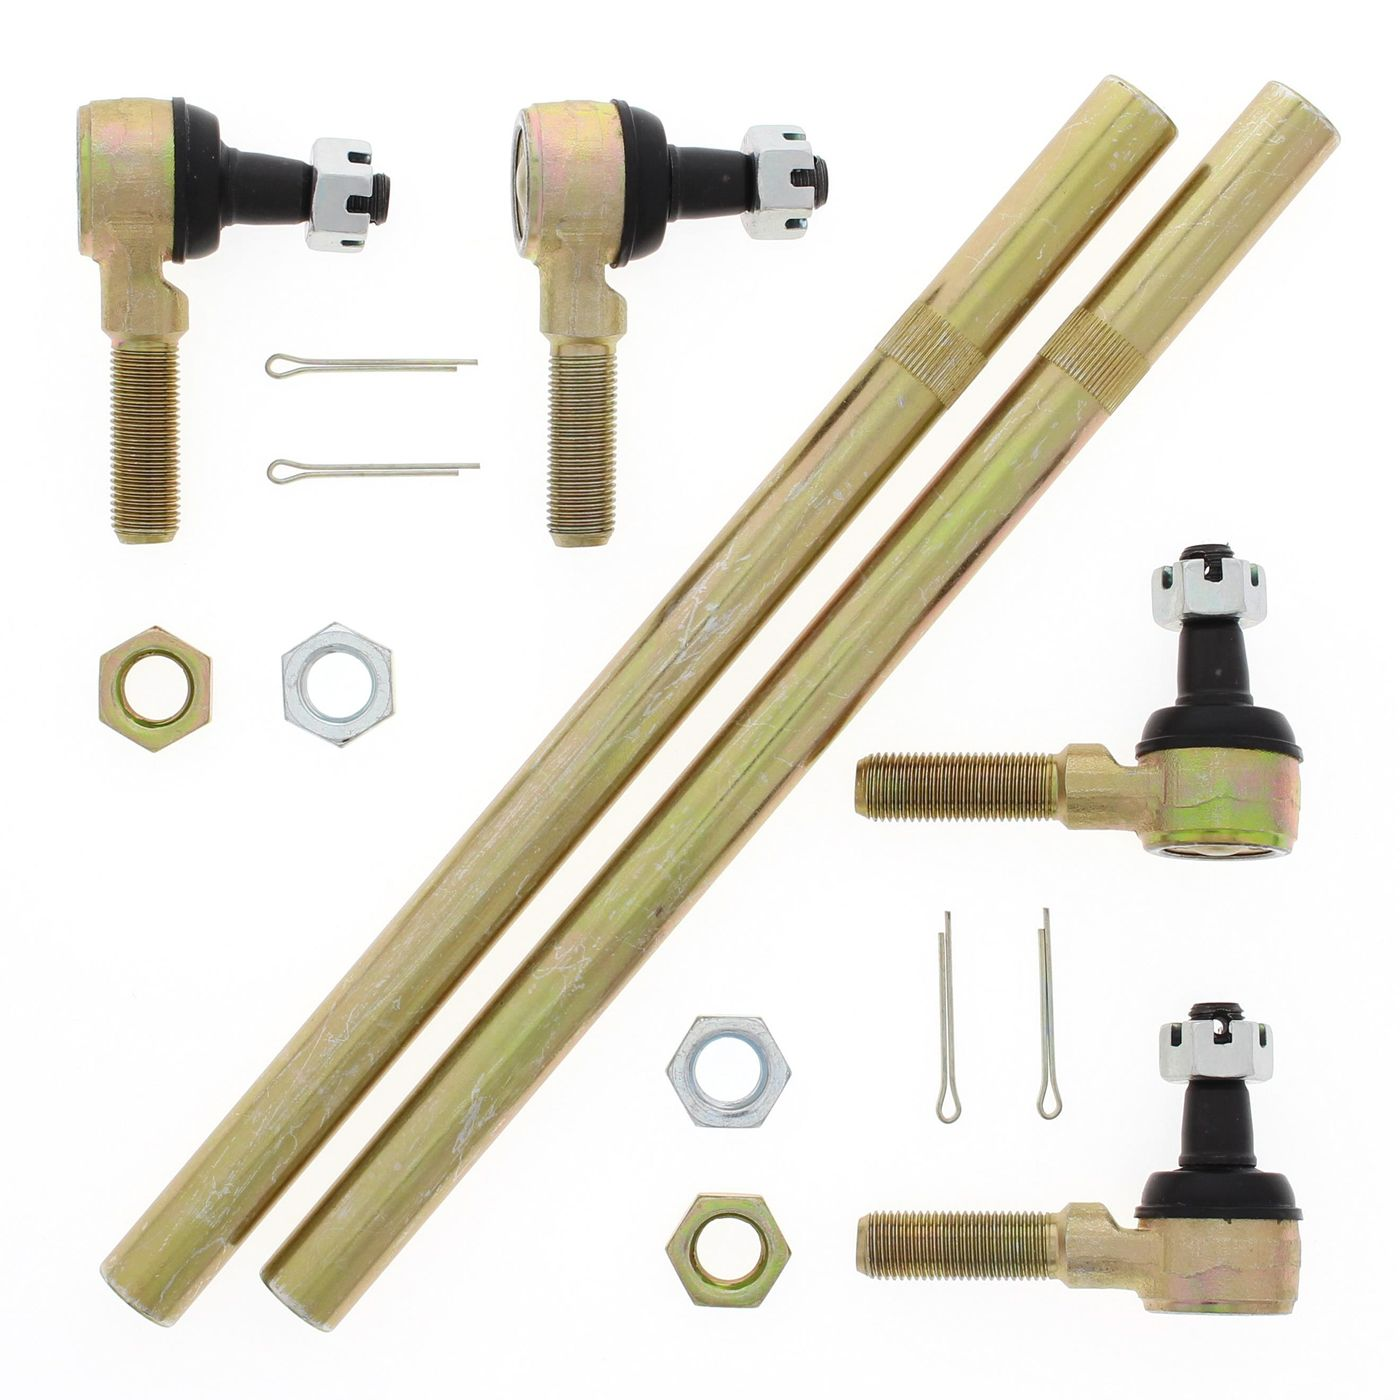 Wrp Tie Rod Kits - WRP521008 image